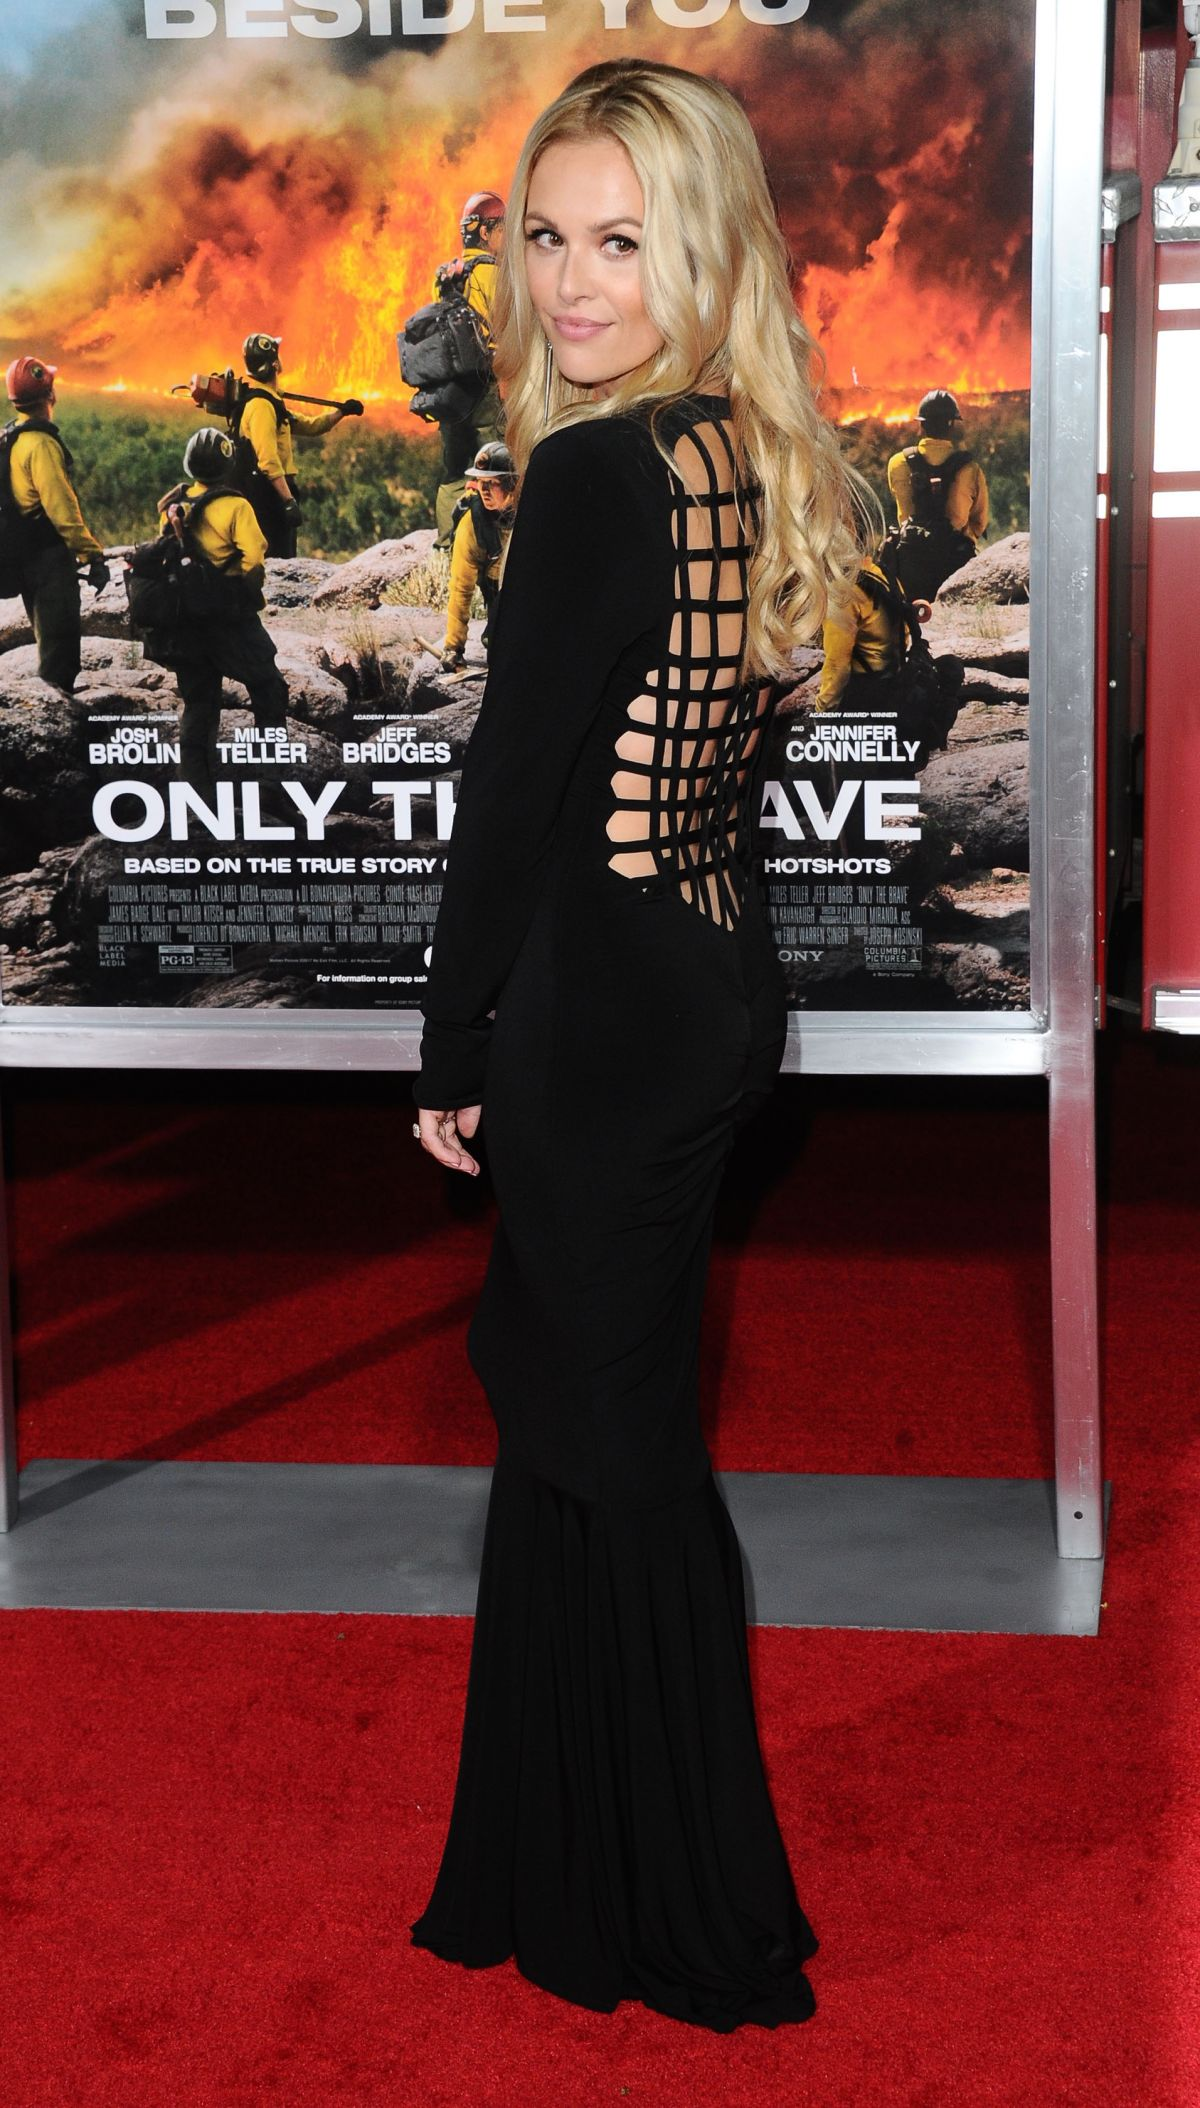 Natalie Hall At 'Only The Brave' film premiere, Los Angeles   natalie-hall-at-only-the-brave-film-premiere-los-angeles-40